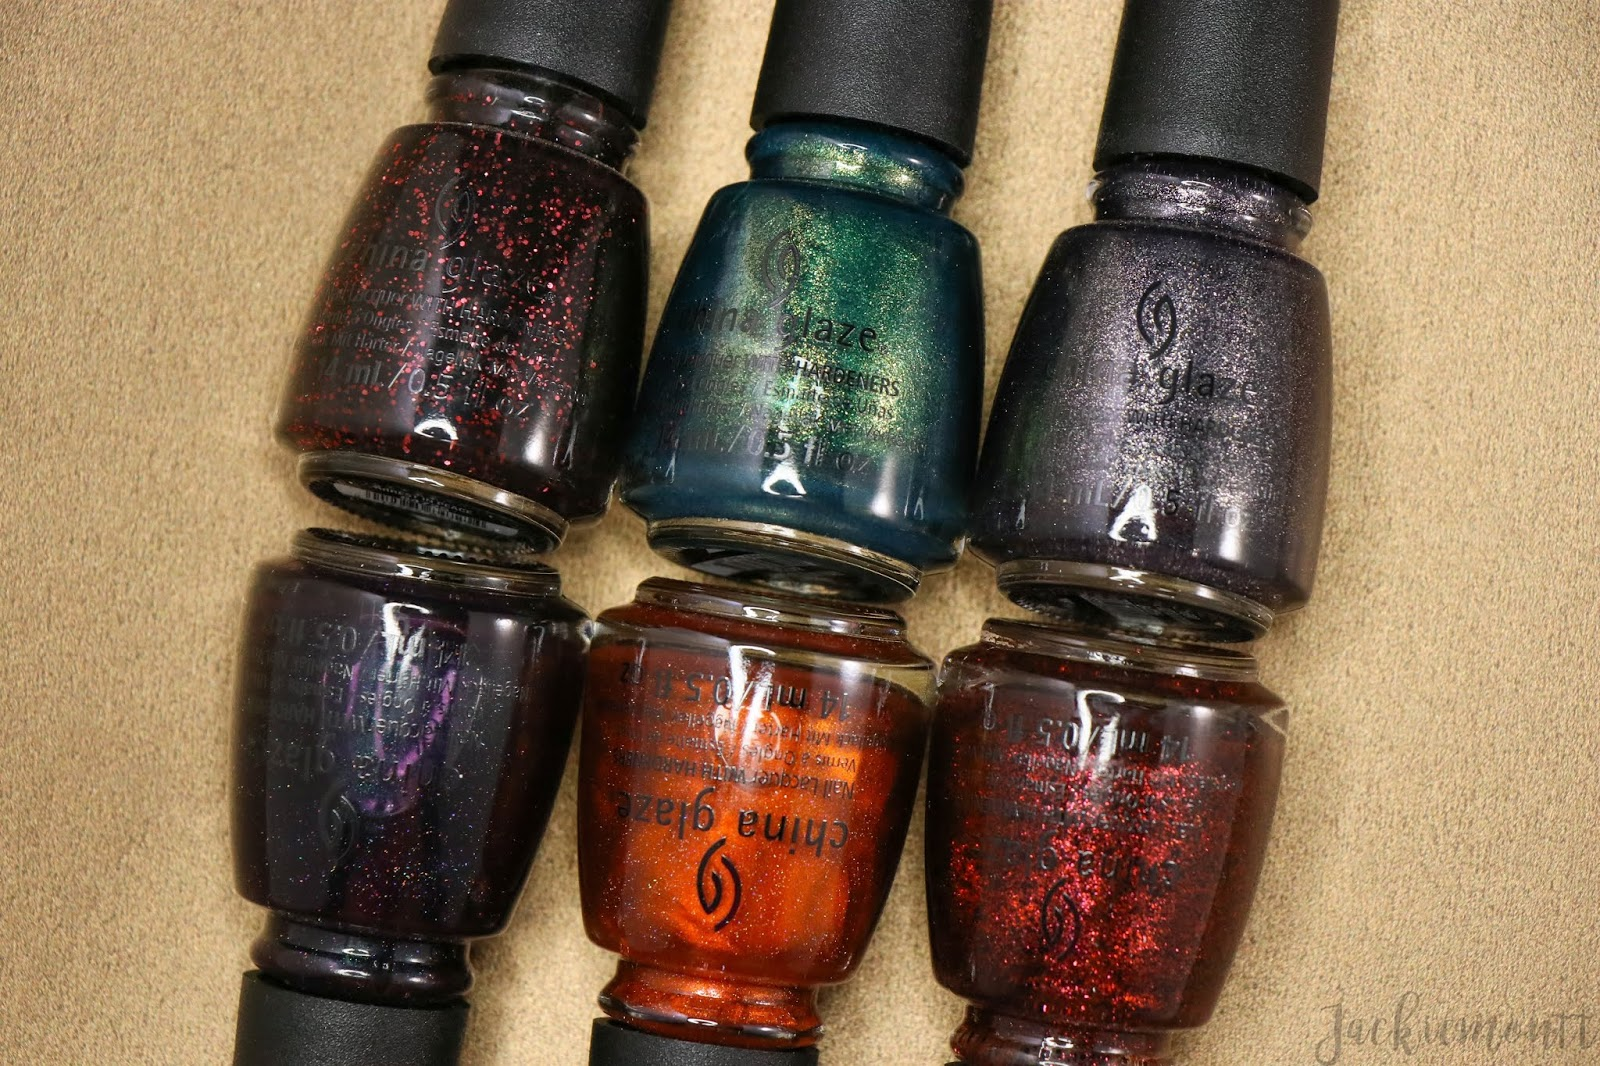 China Glaze Halloween 2020 Swatches China Glaze To Catch A Colour Swatches and Review [Halloween 2019